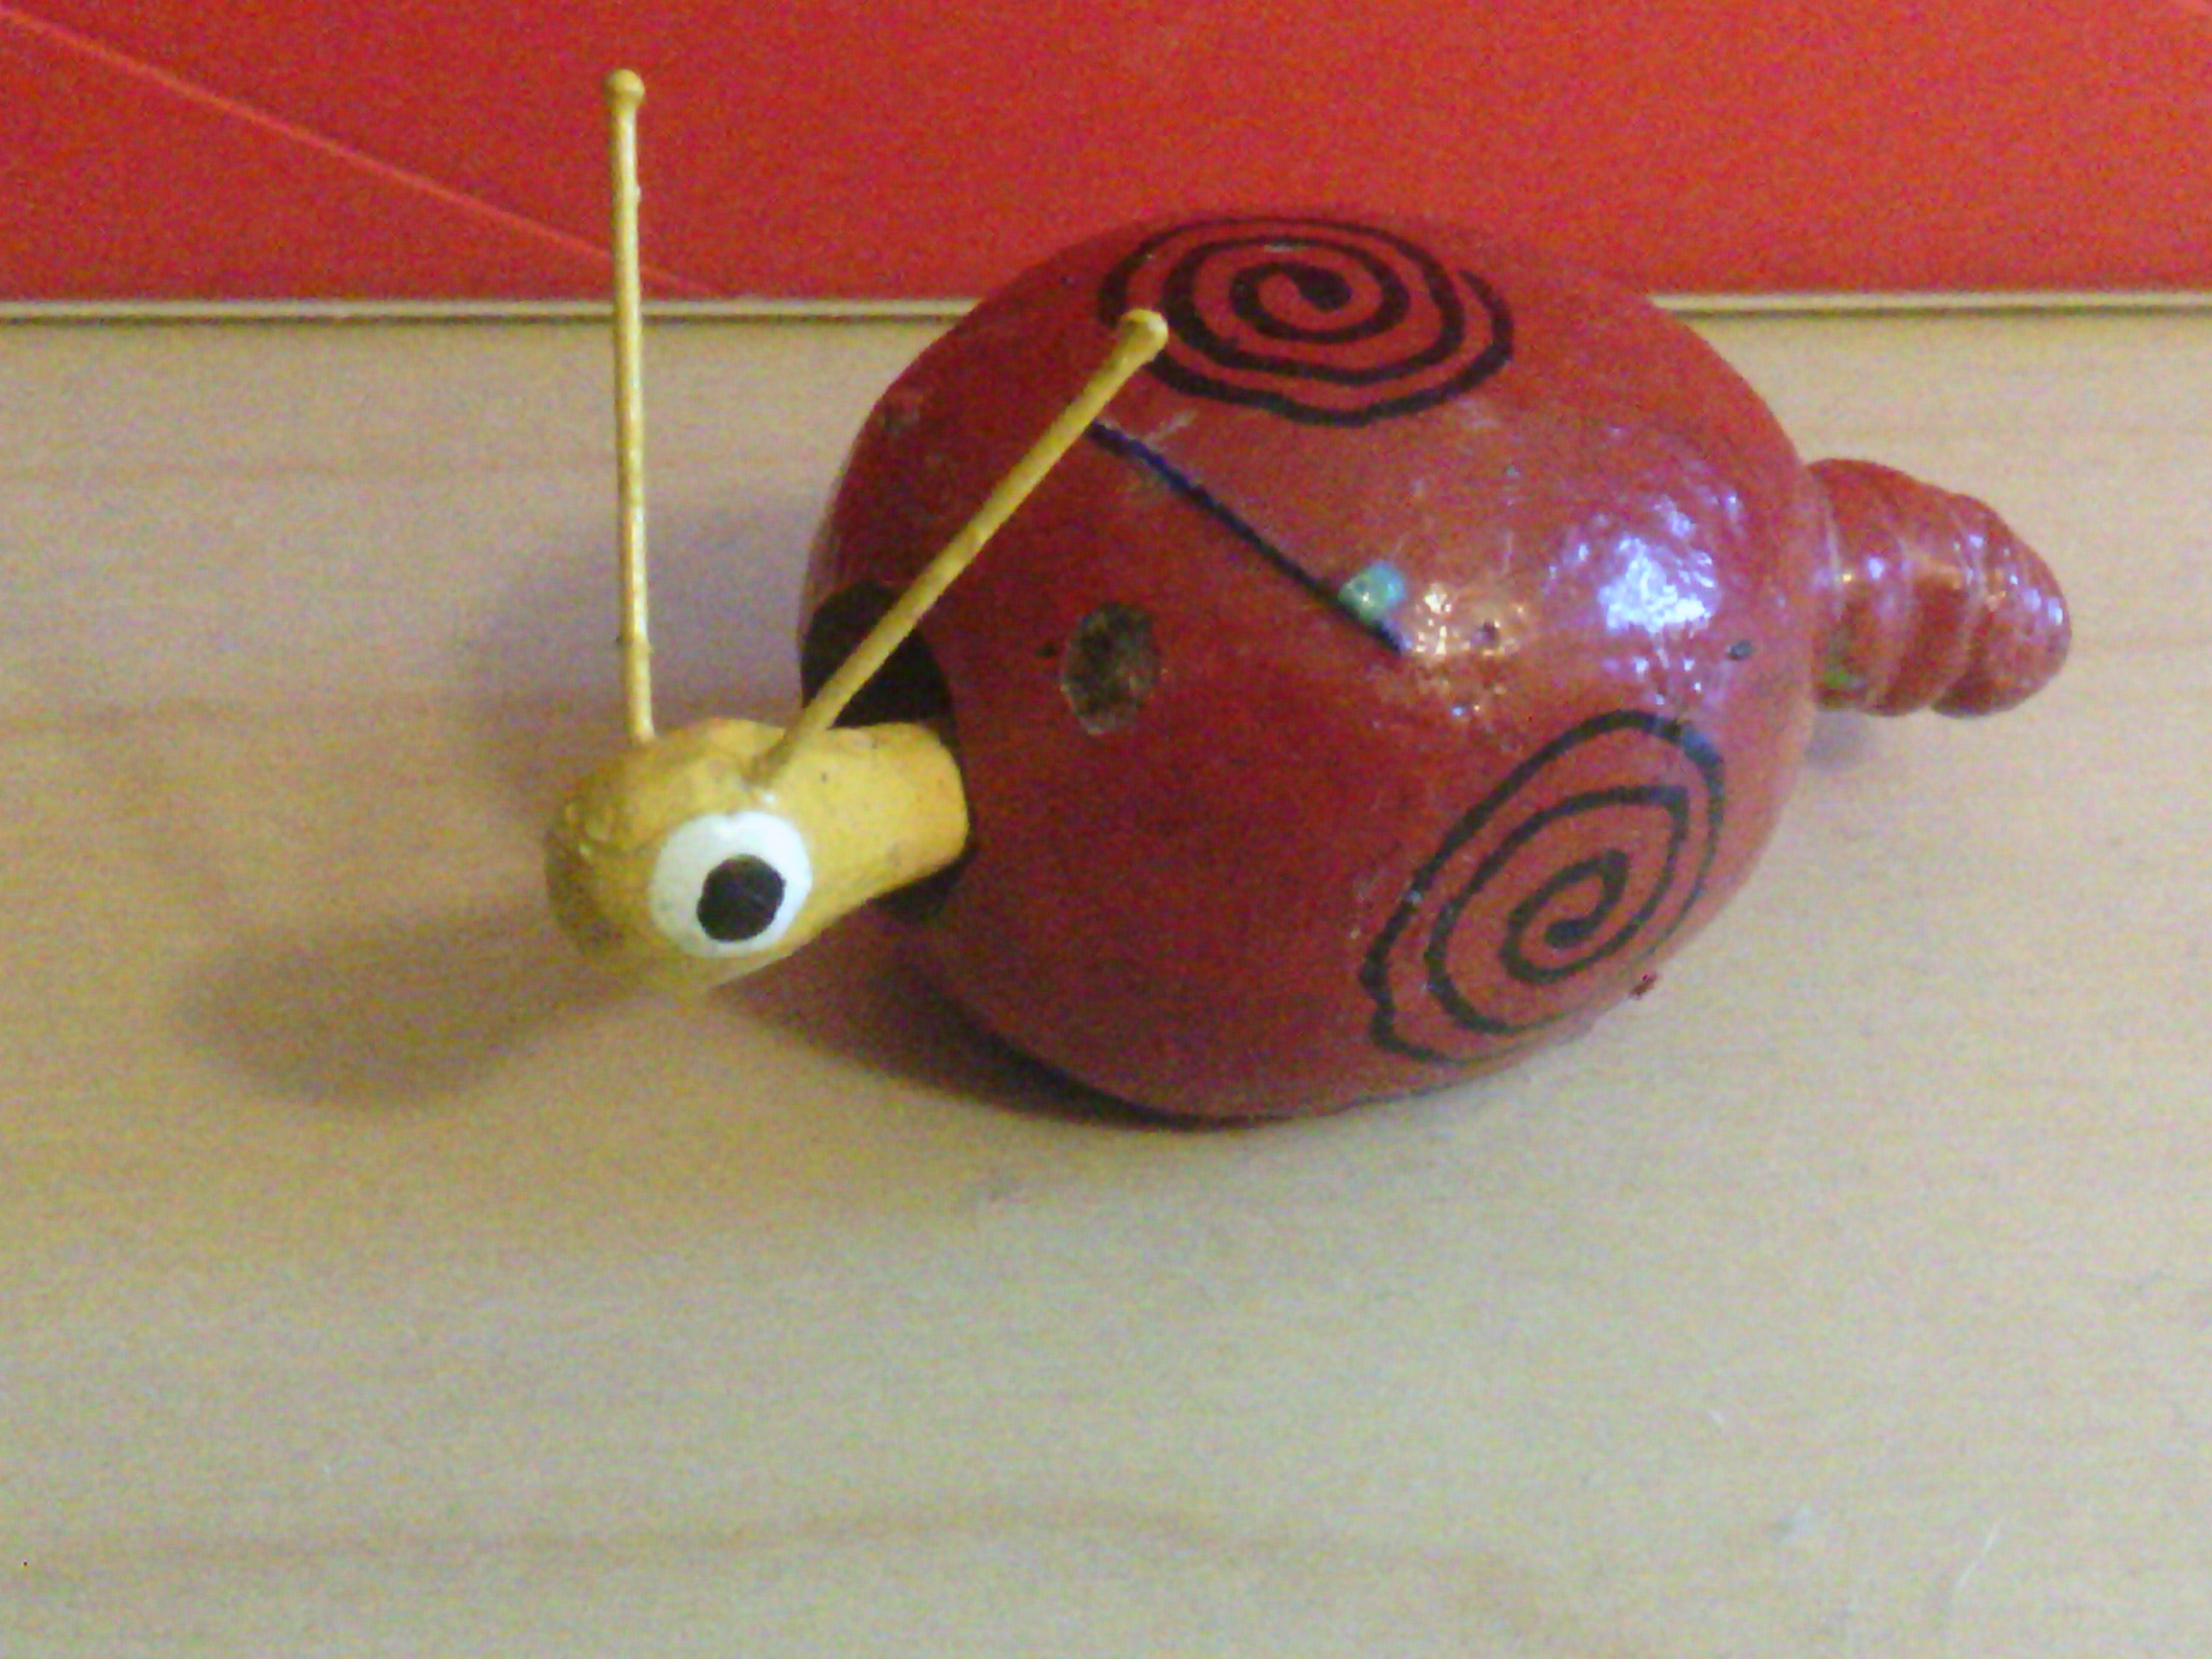 The red Swirled Snail